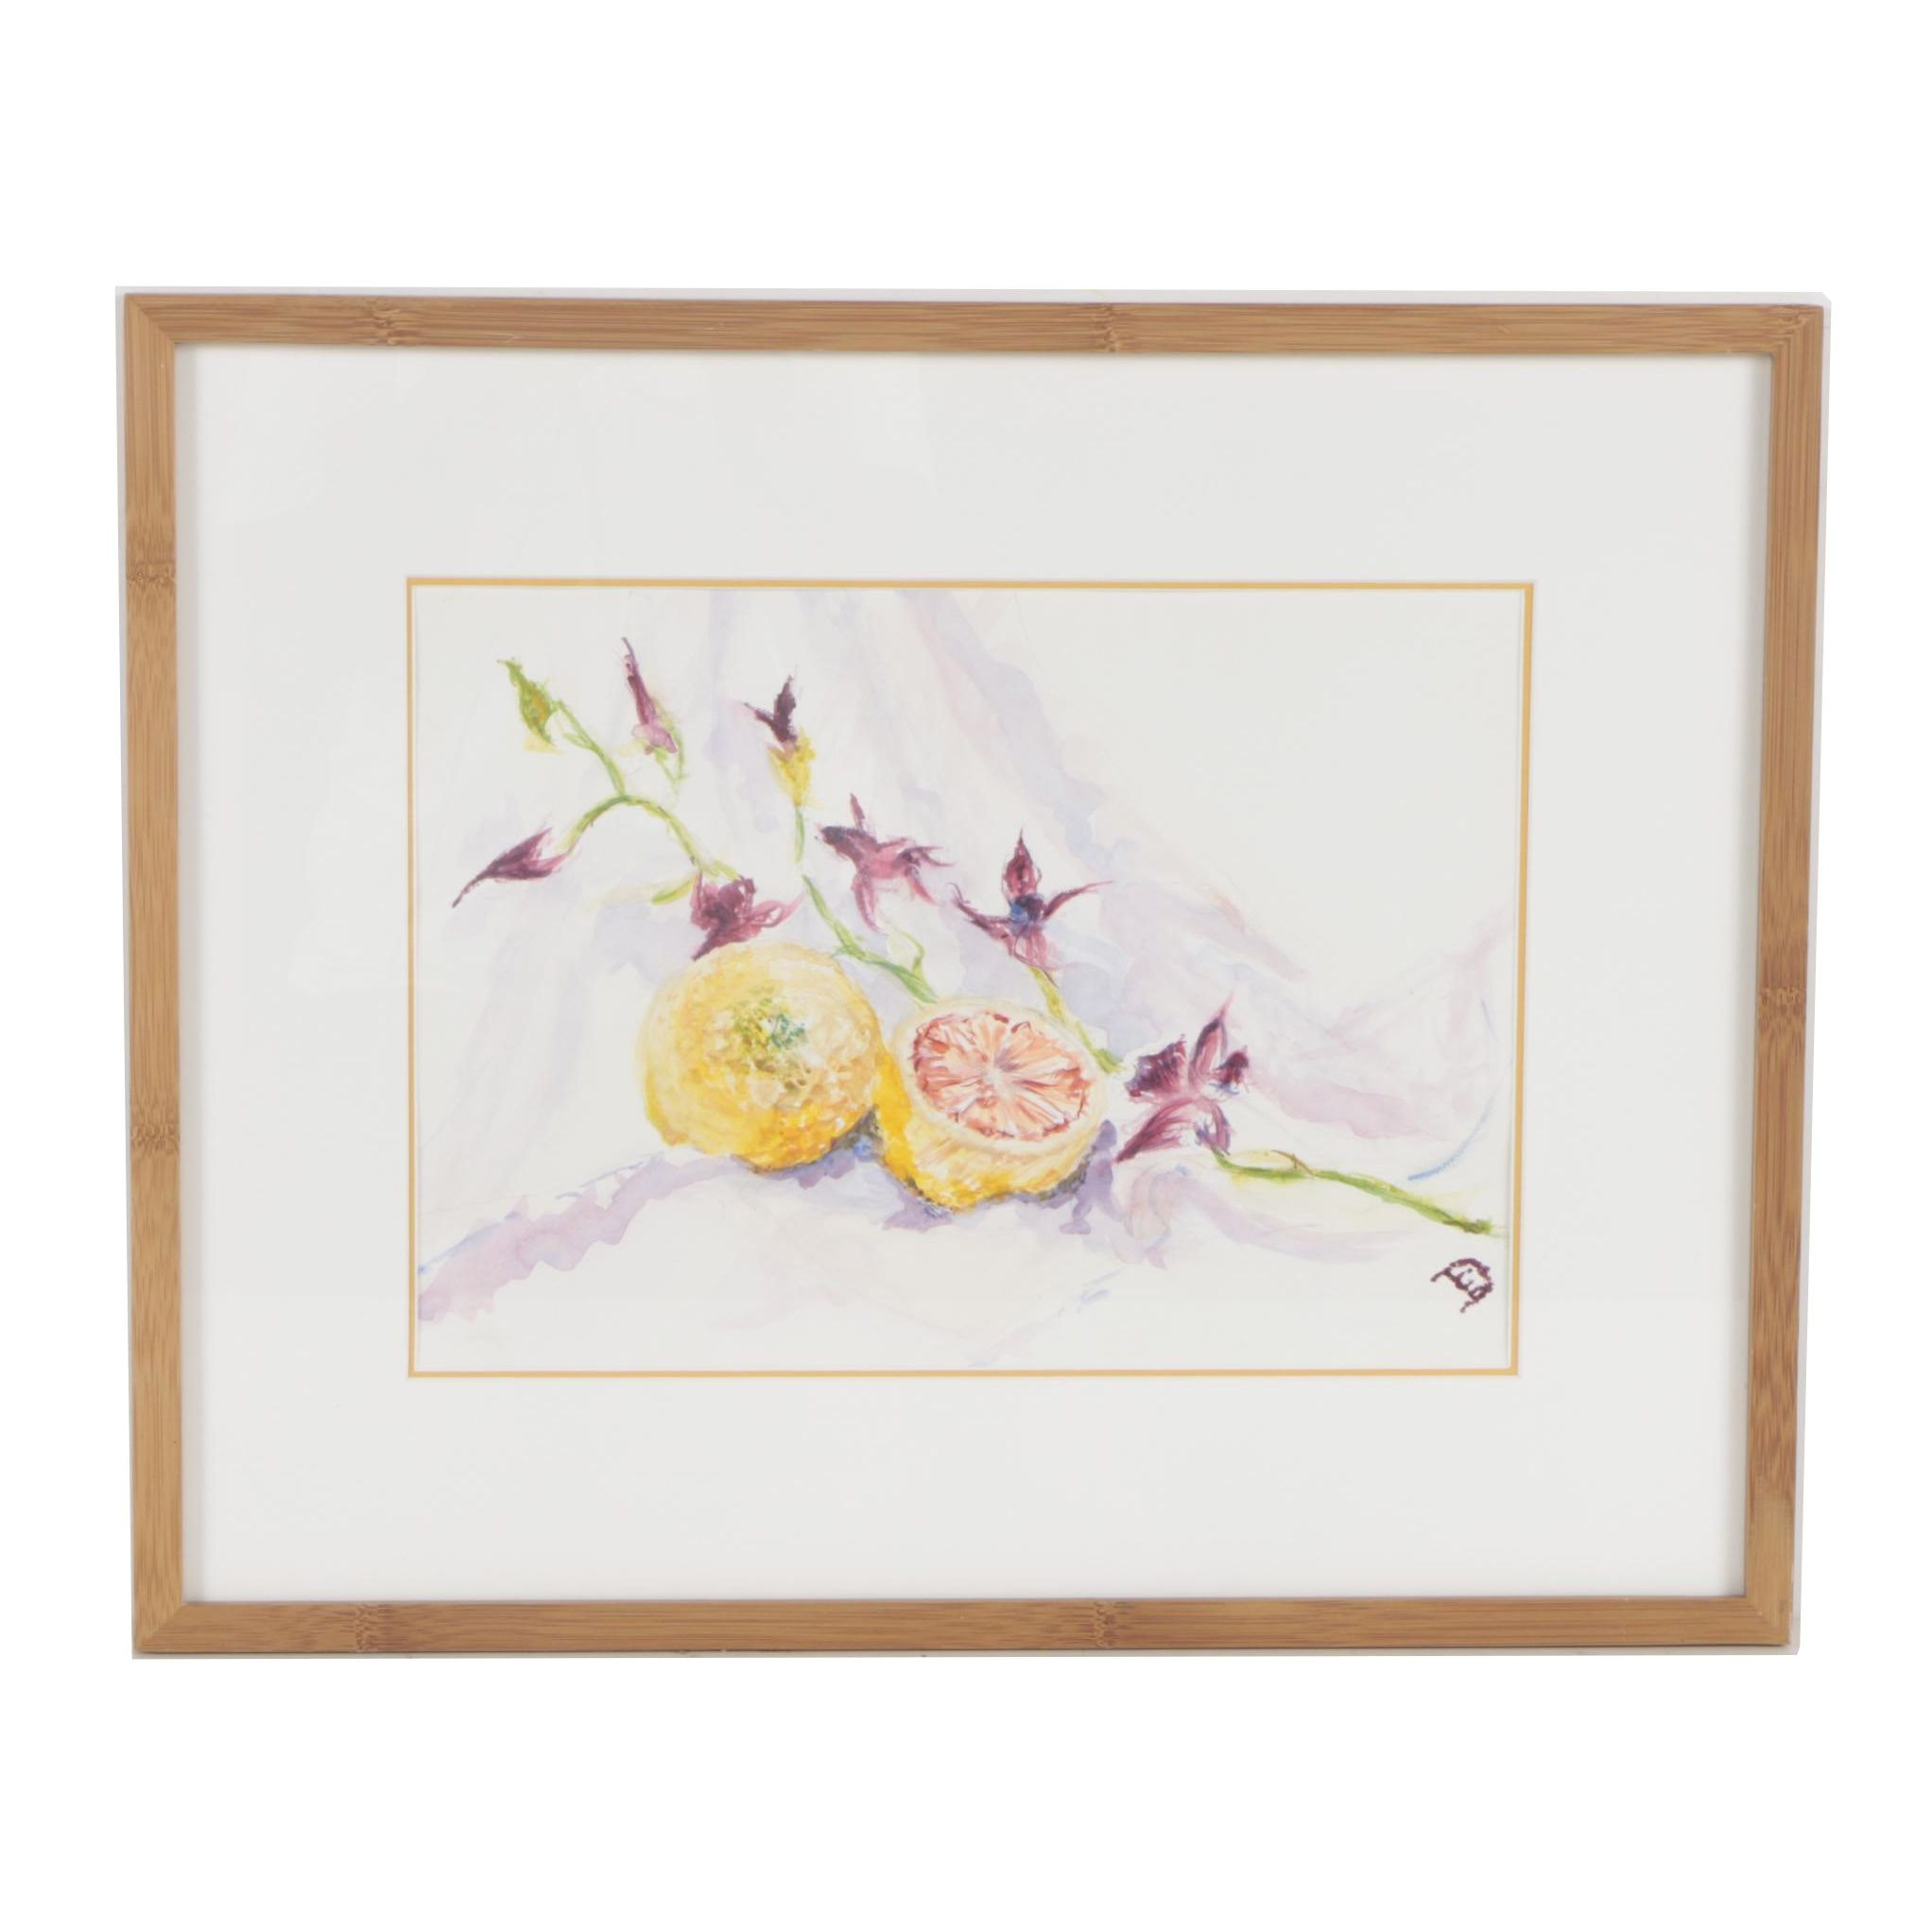 "Eve D'Amato Watercolor Painting ""With a Slice of Lemon"""